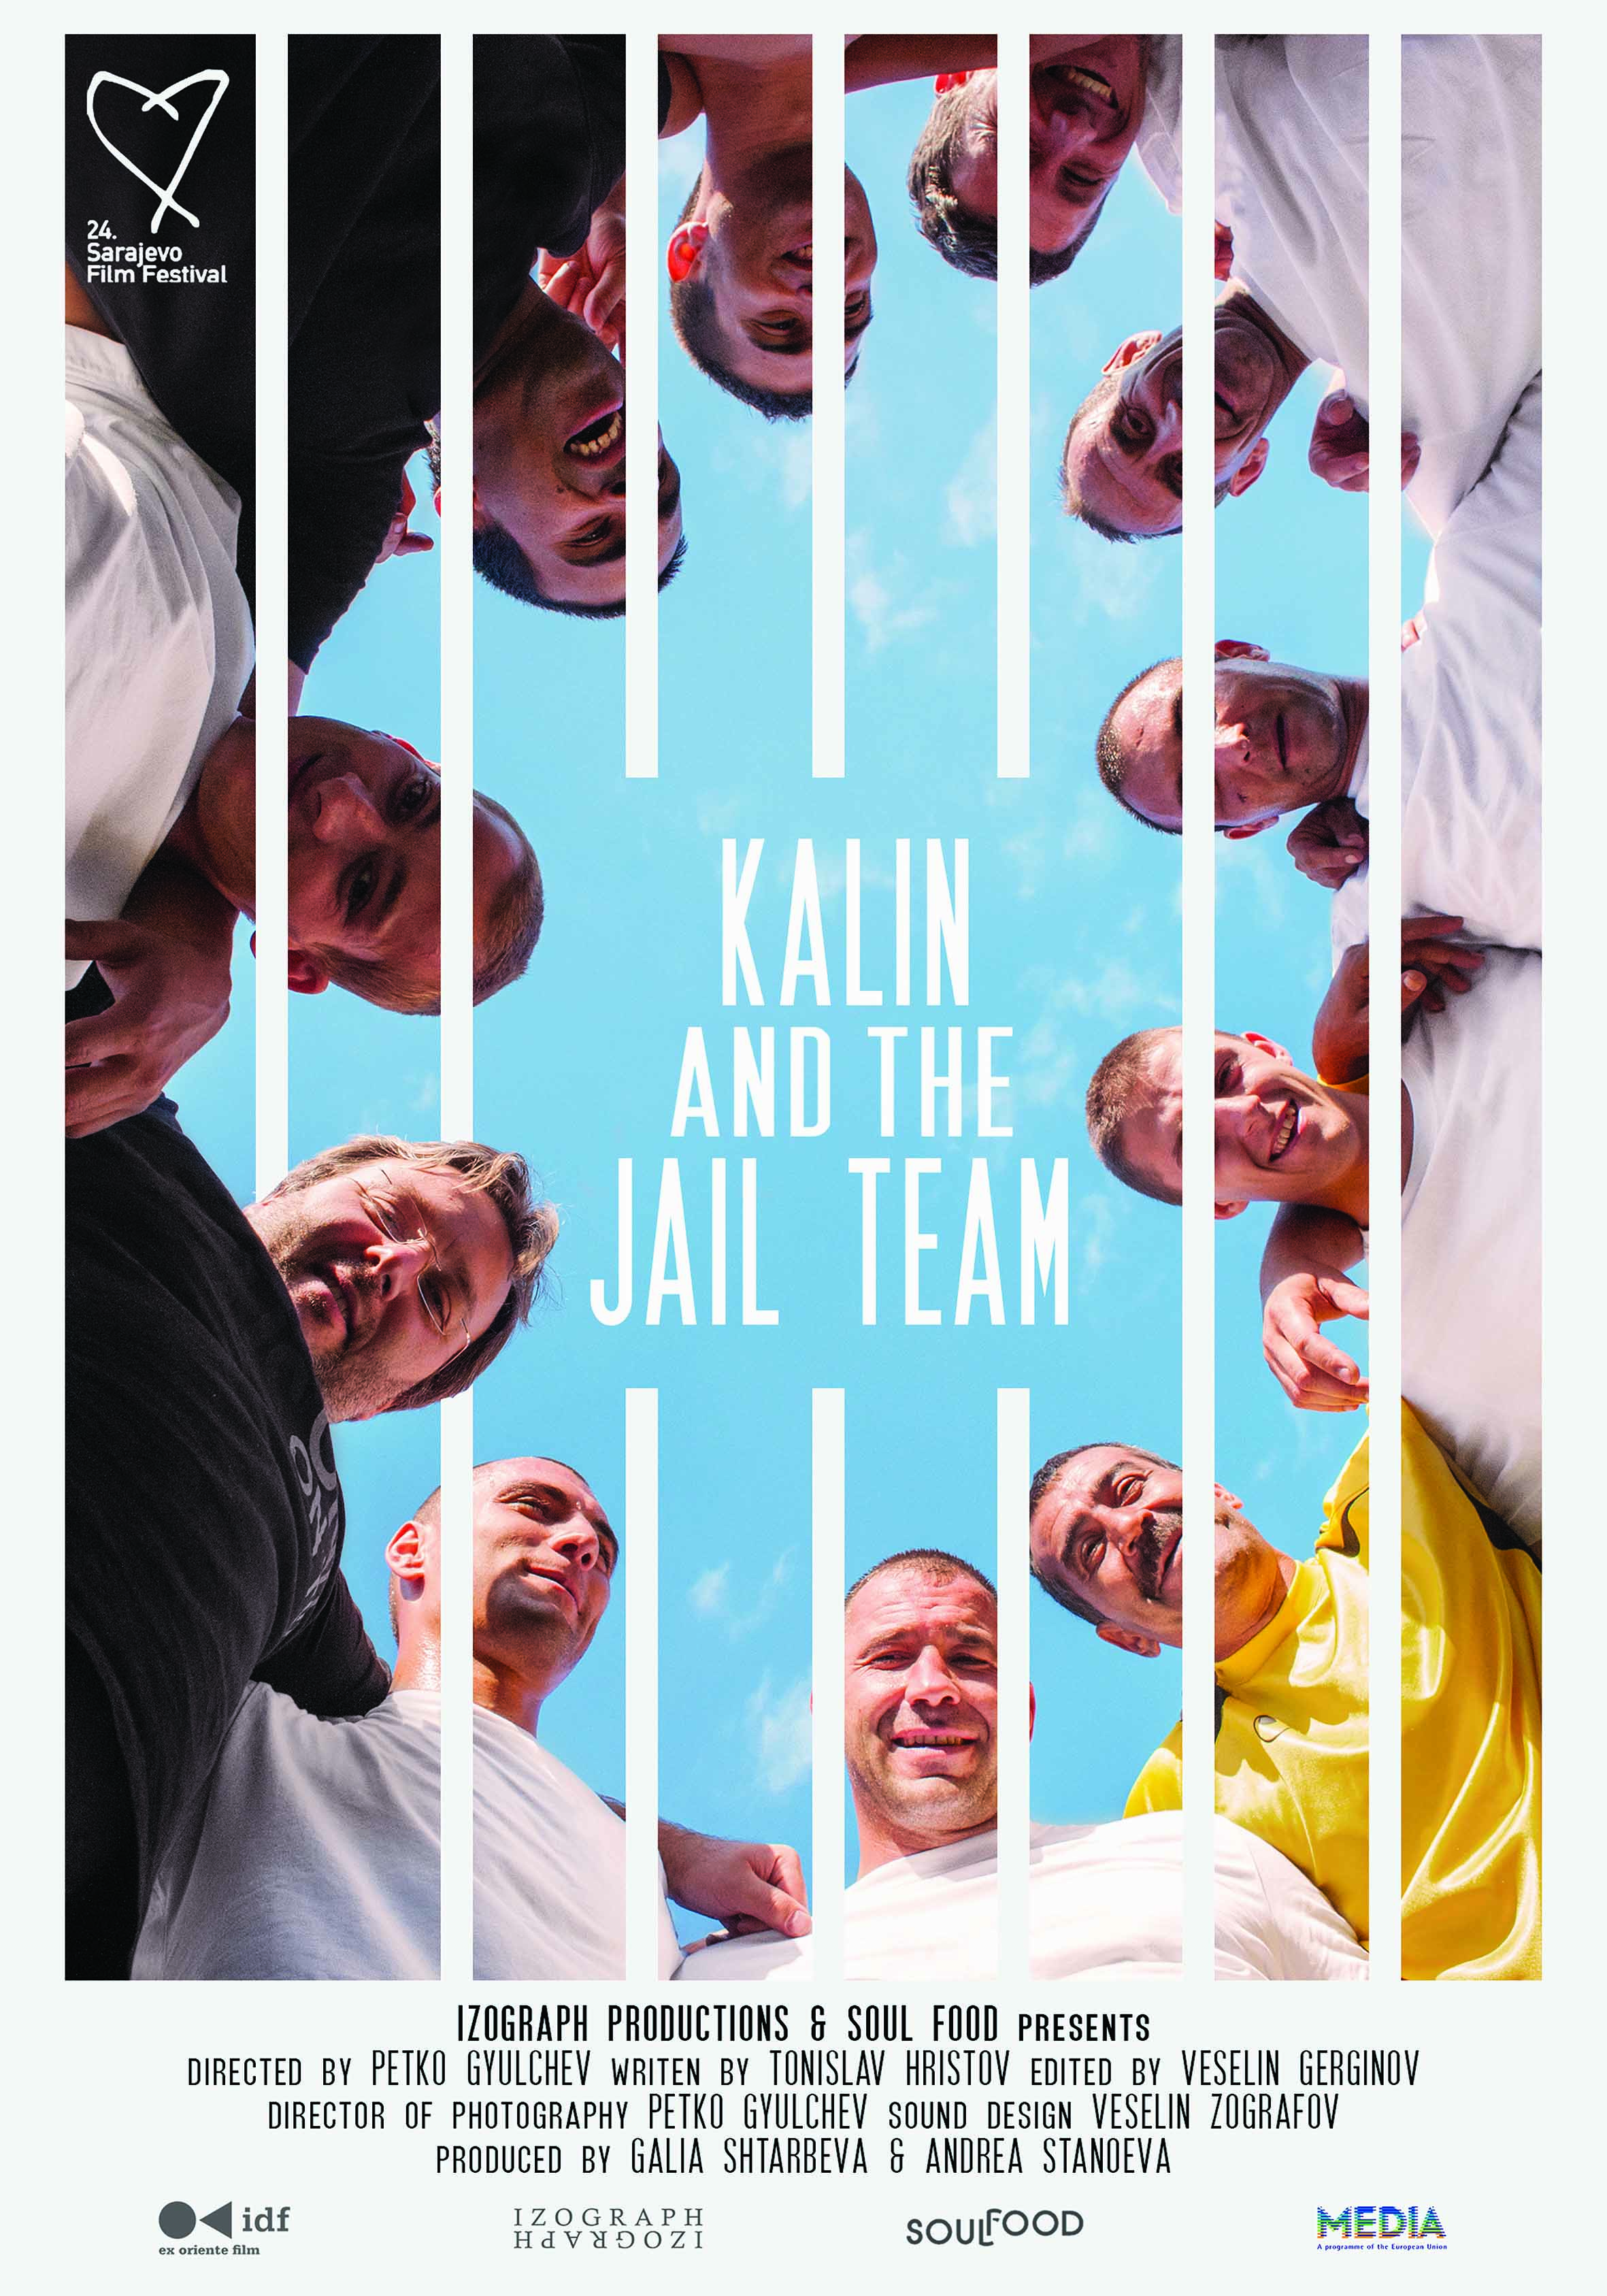 Kalin and the Jail Team